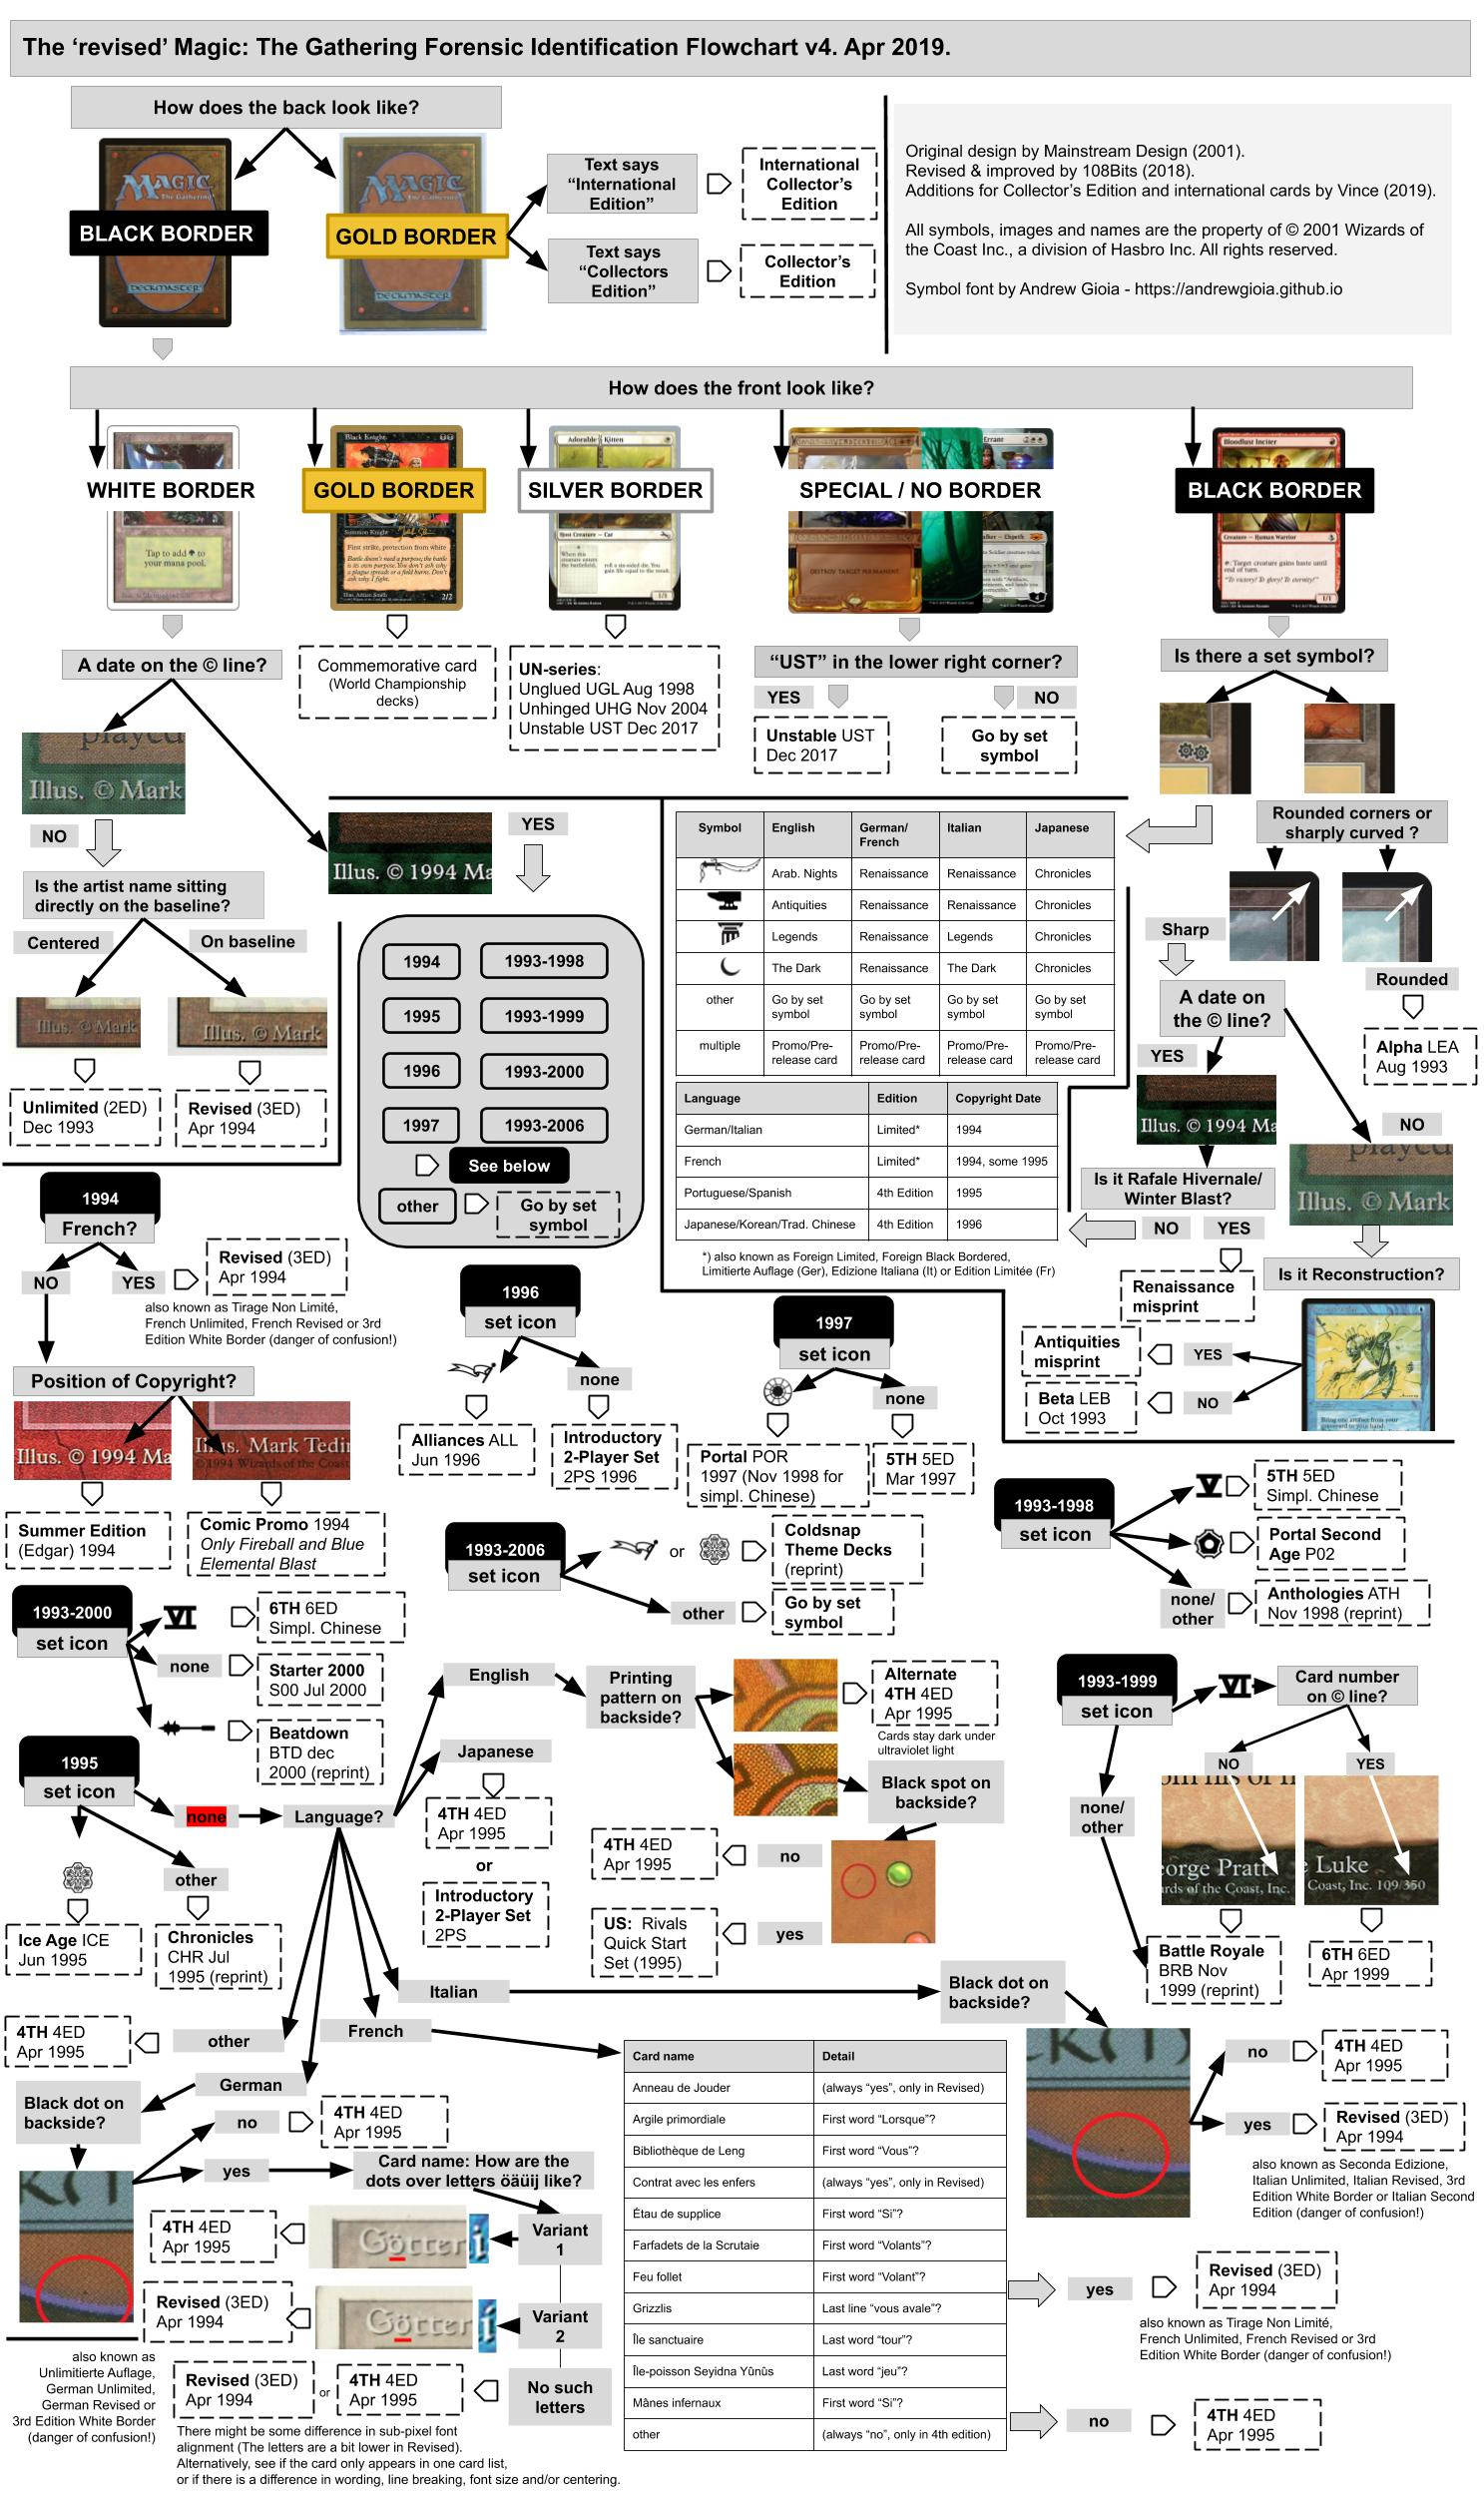 Revised Magic the Gathering Forensic Identification